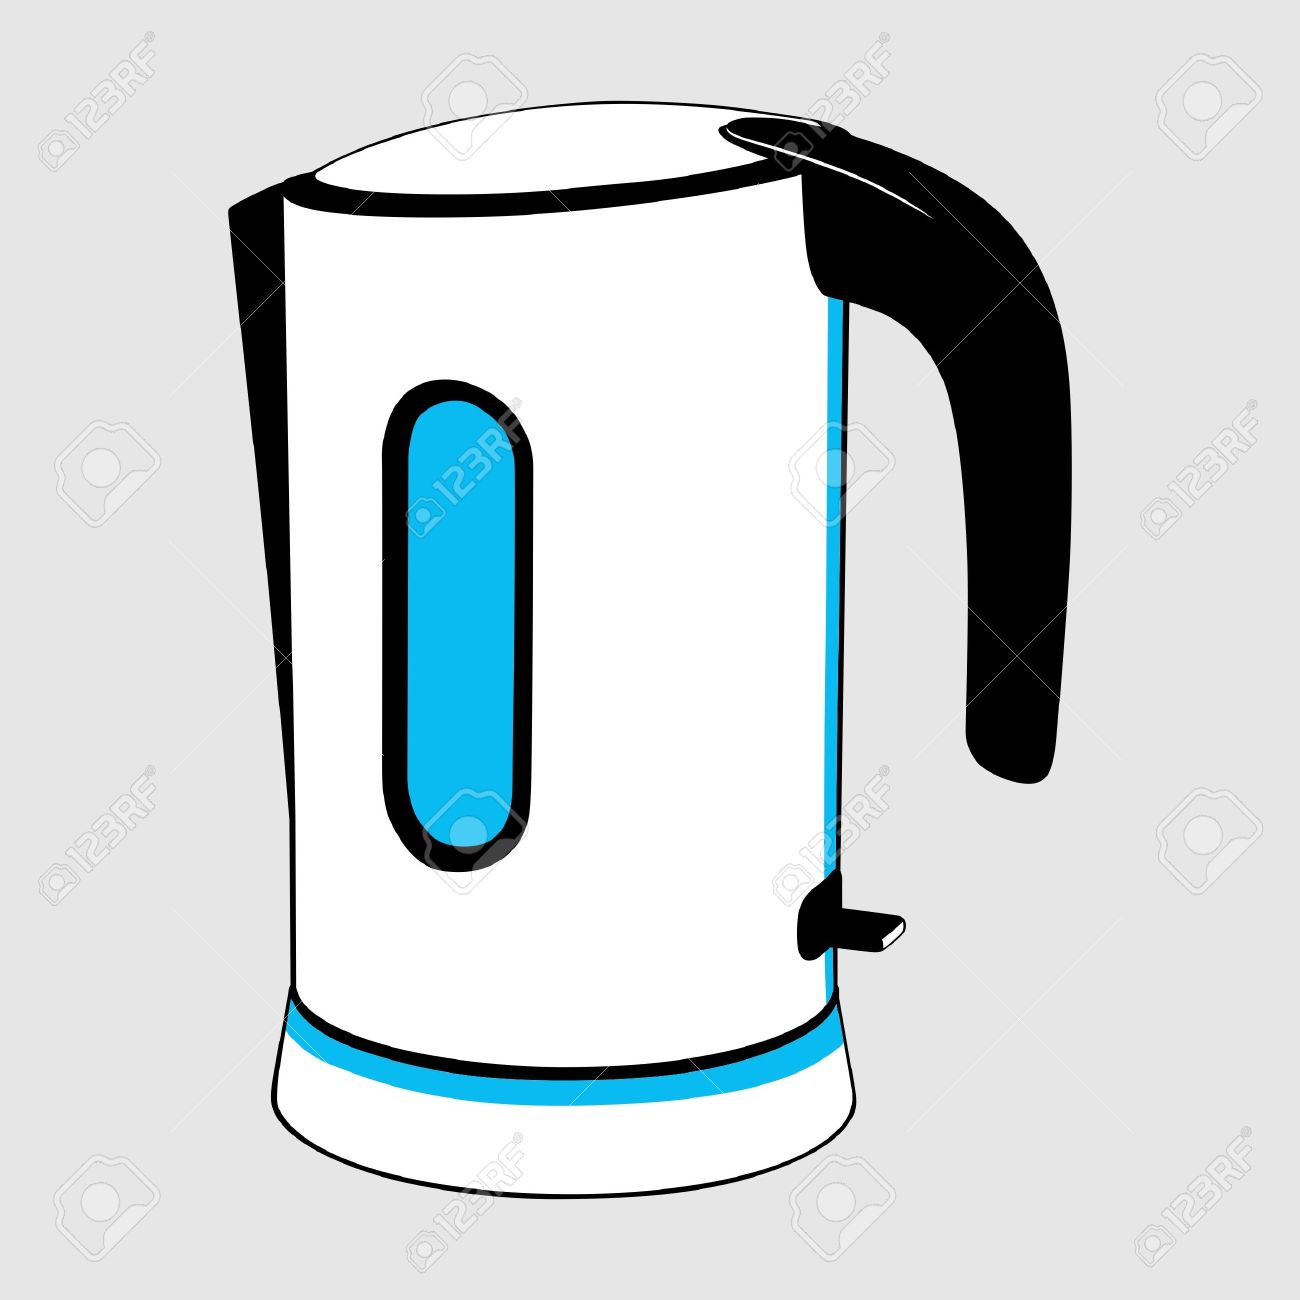 1300x1300 Steam Clipart Electric Kettle